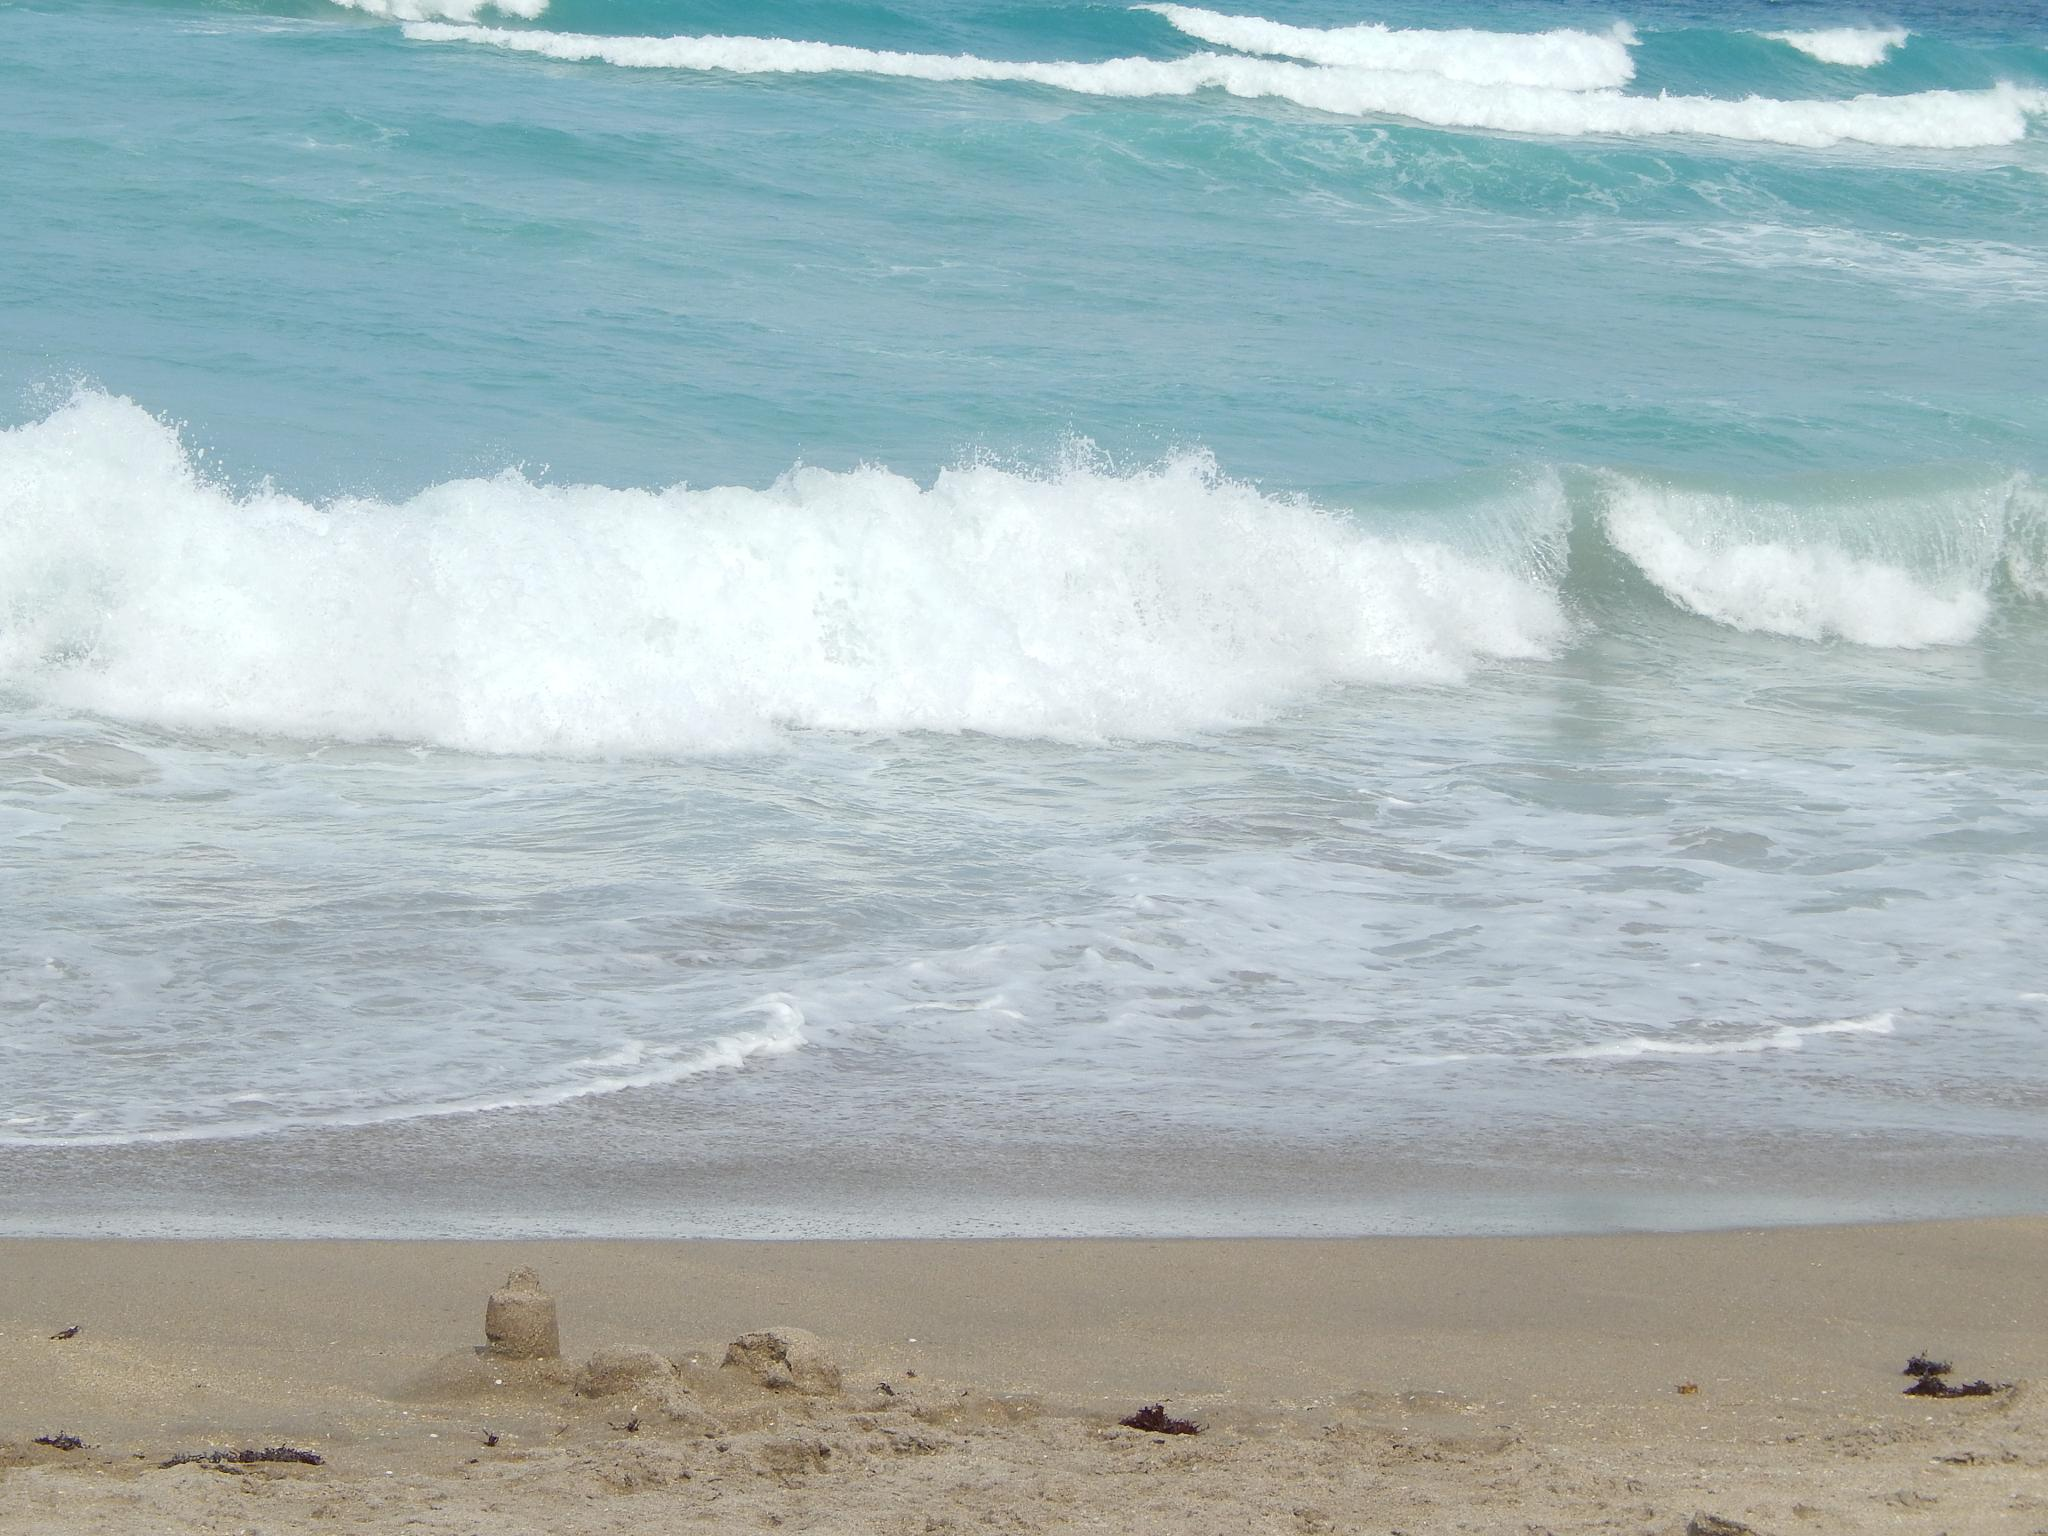 sand castles & waves by grannypam